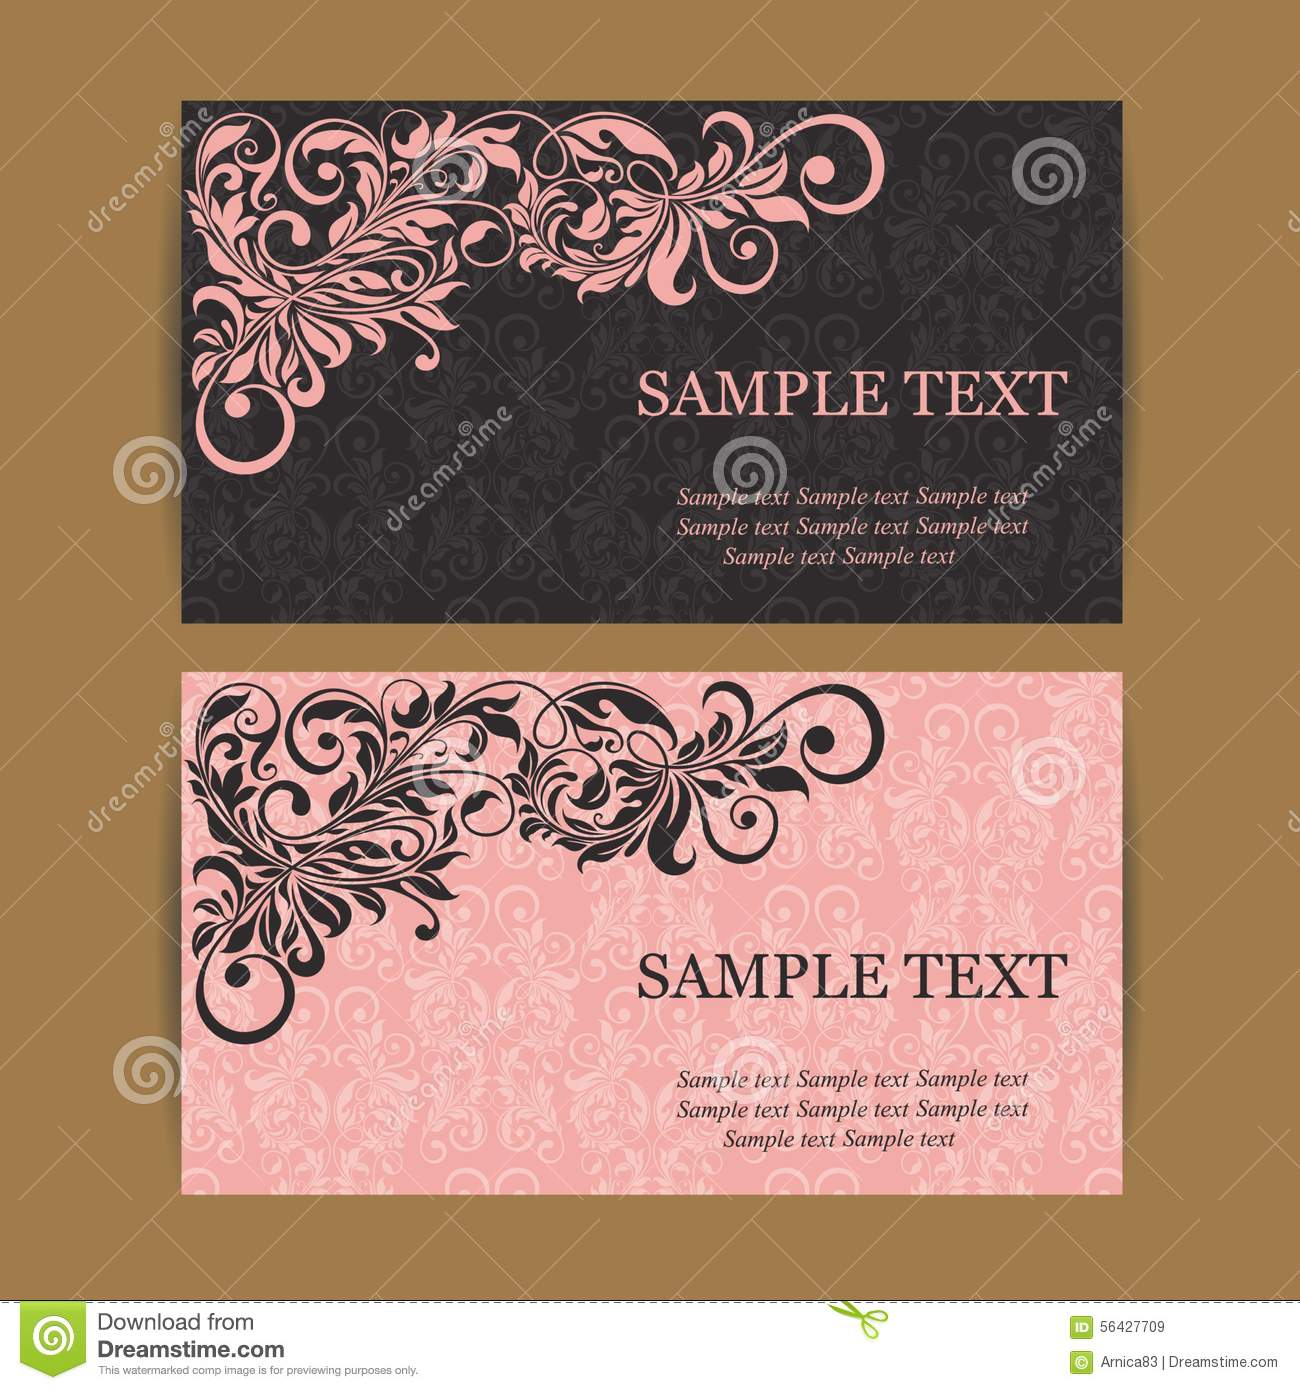 Floral Vintage Business Cards Stock Vector - Image: 56427709